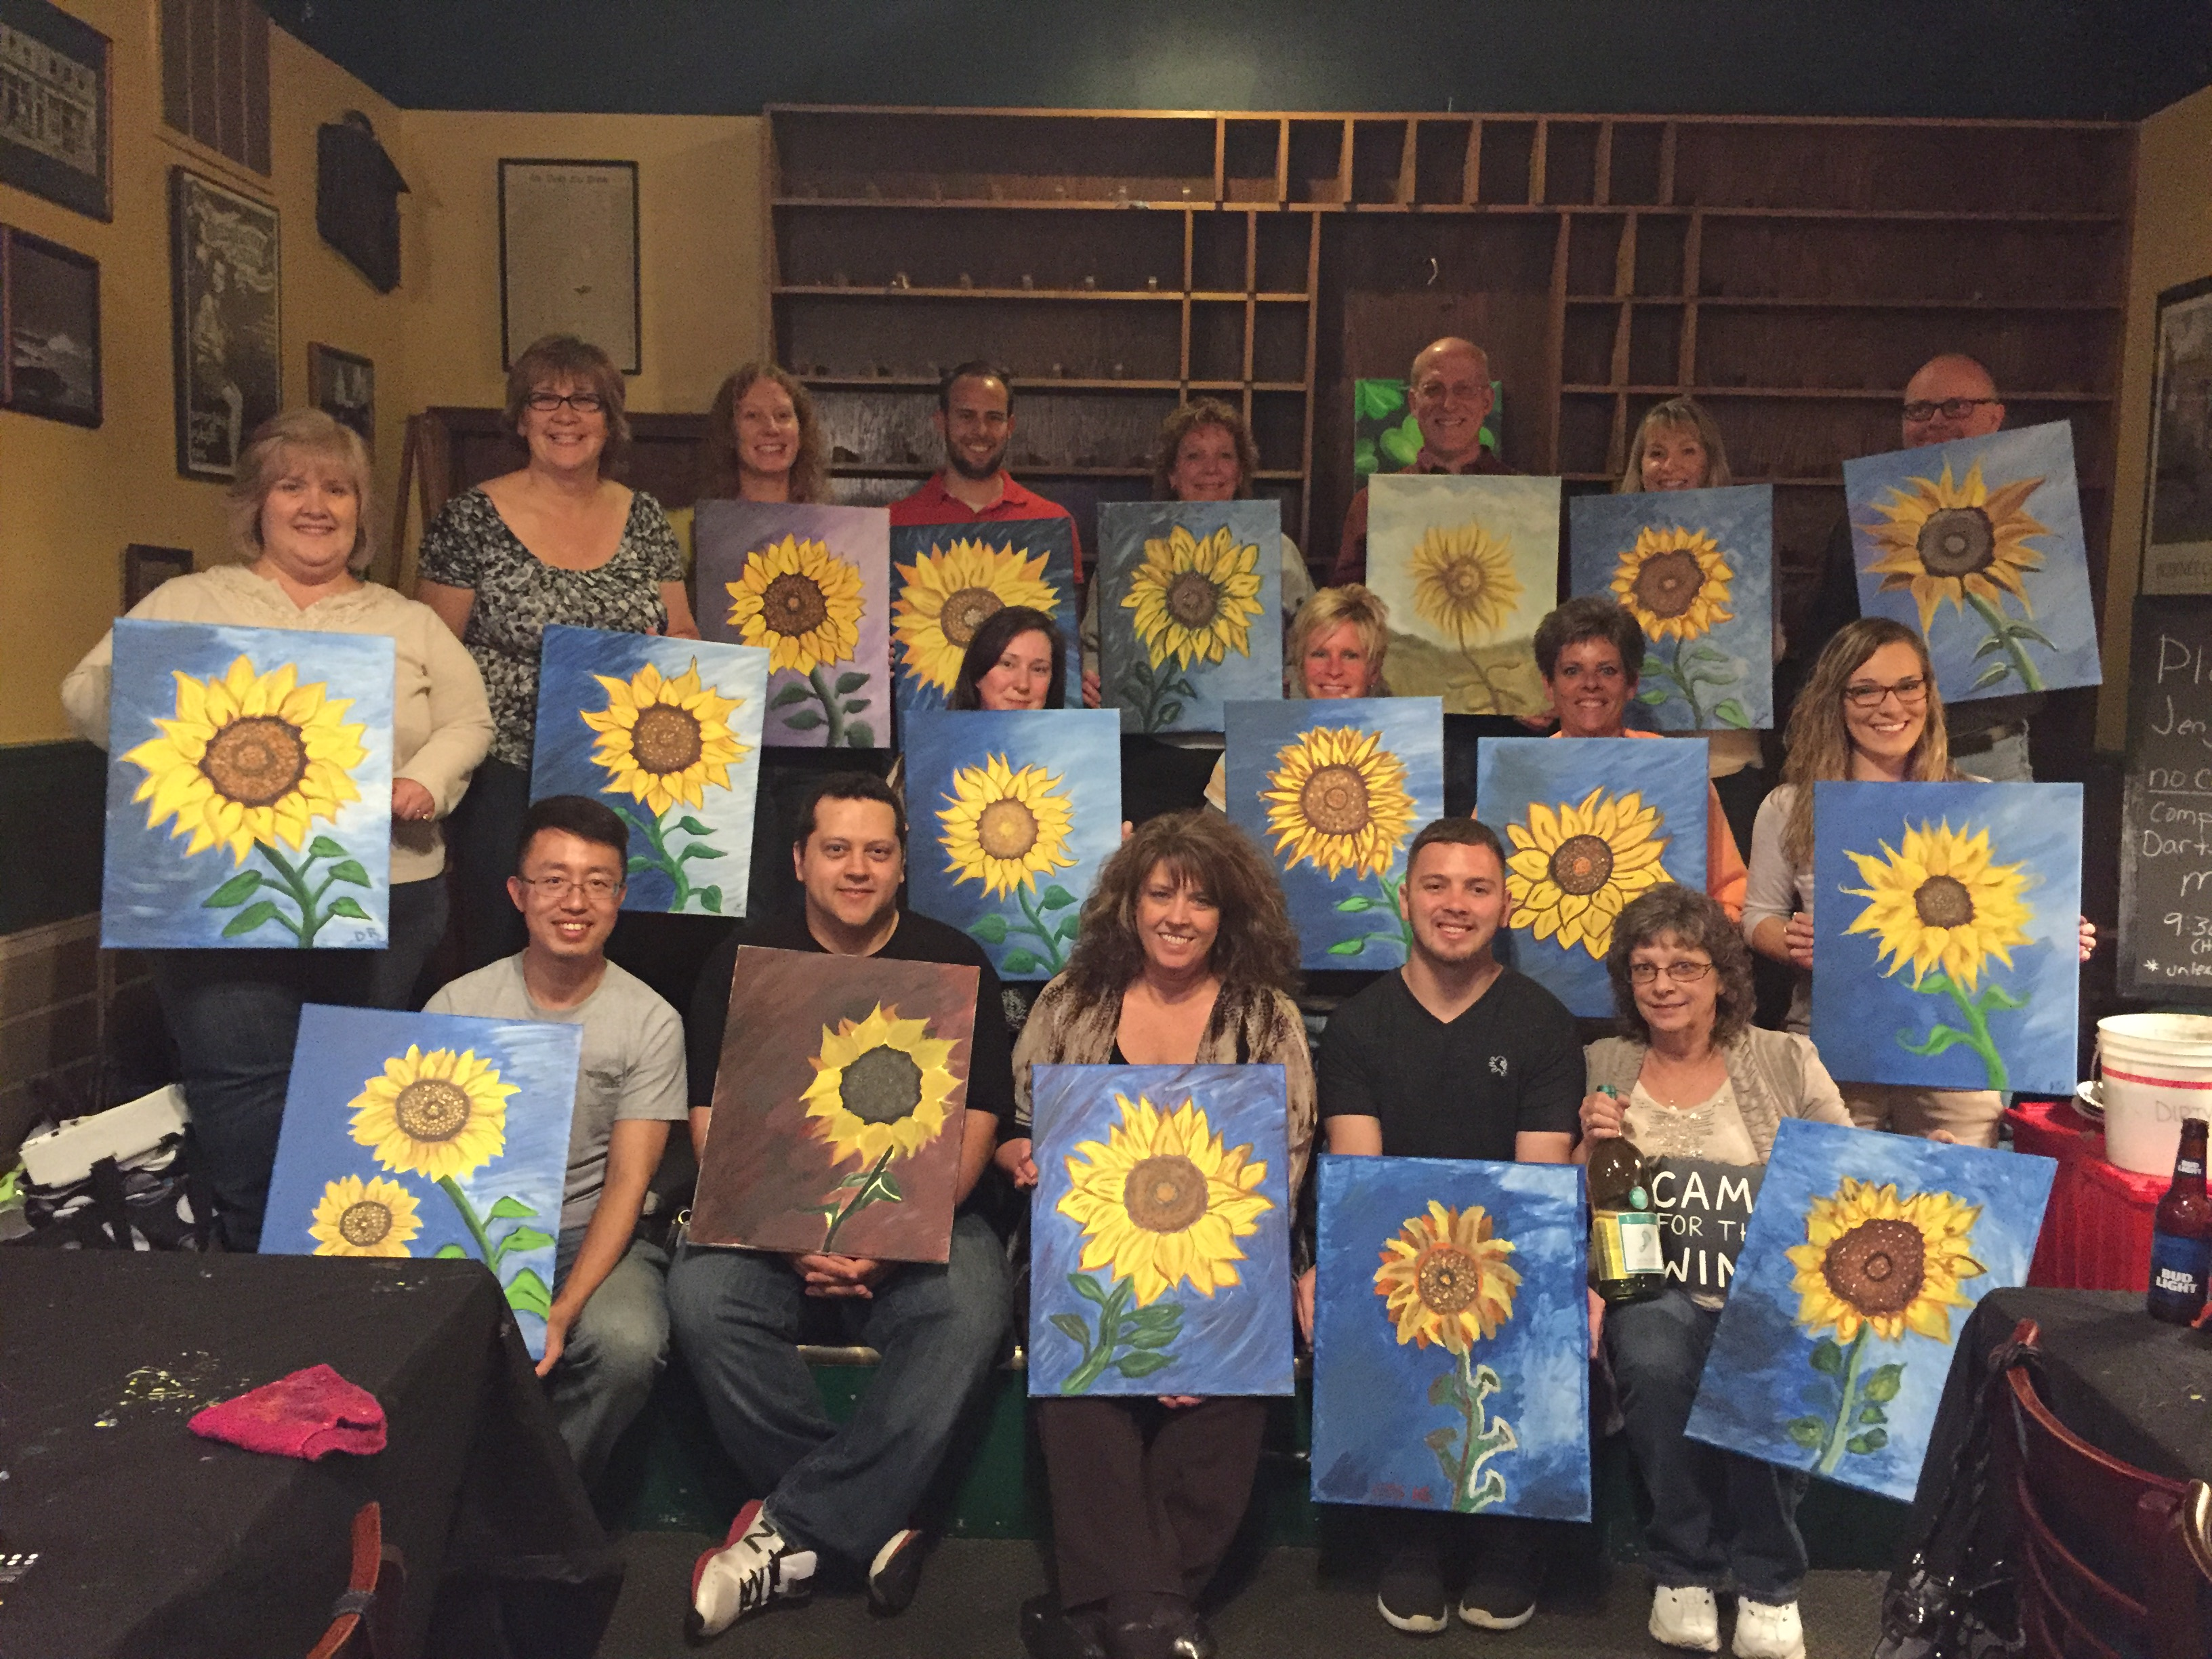 Taylor Company did some team building at Suds by painting Sunflowers together! 5/11/16